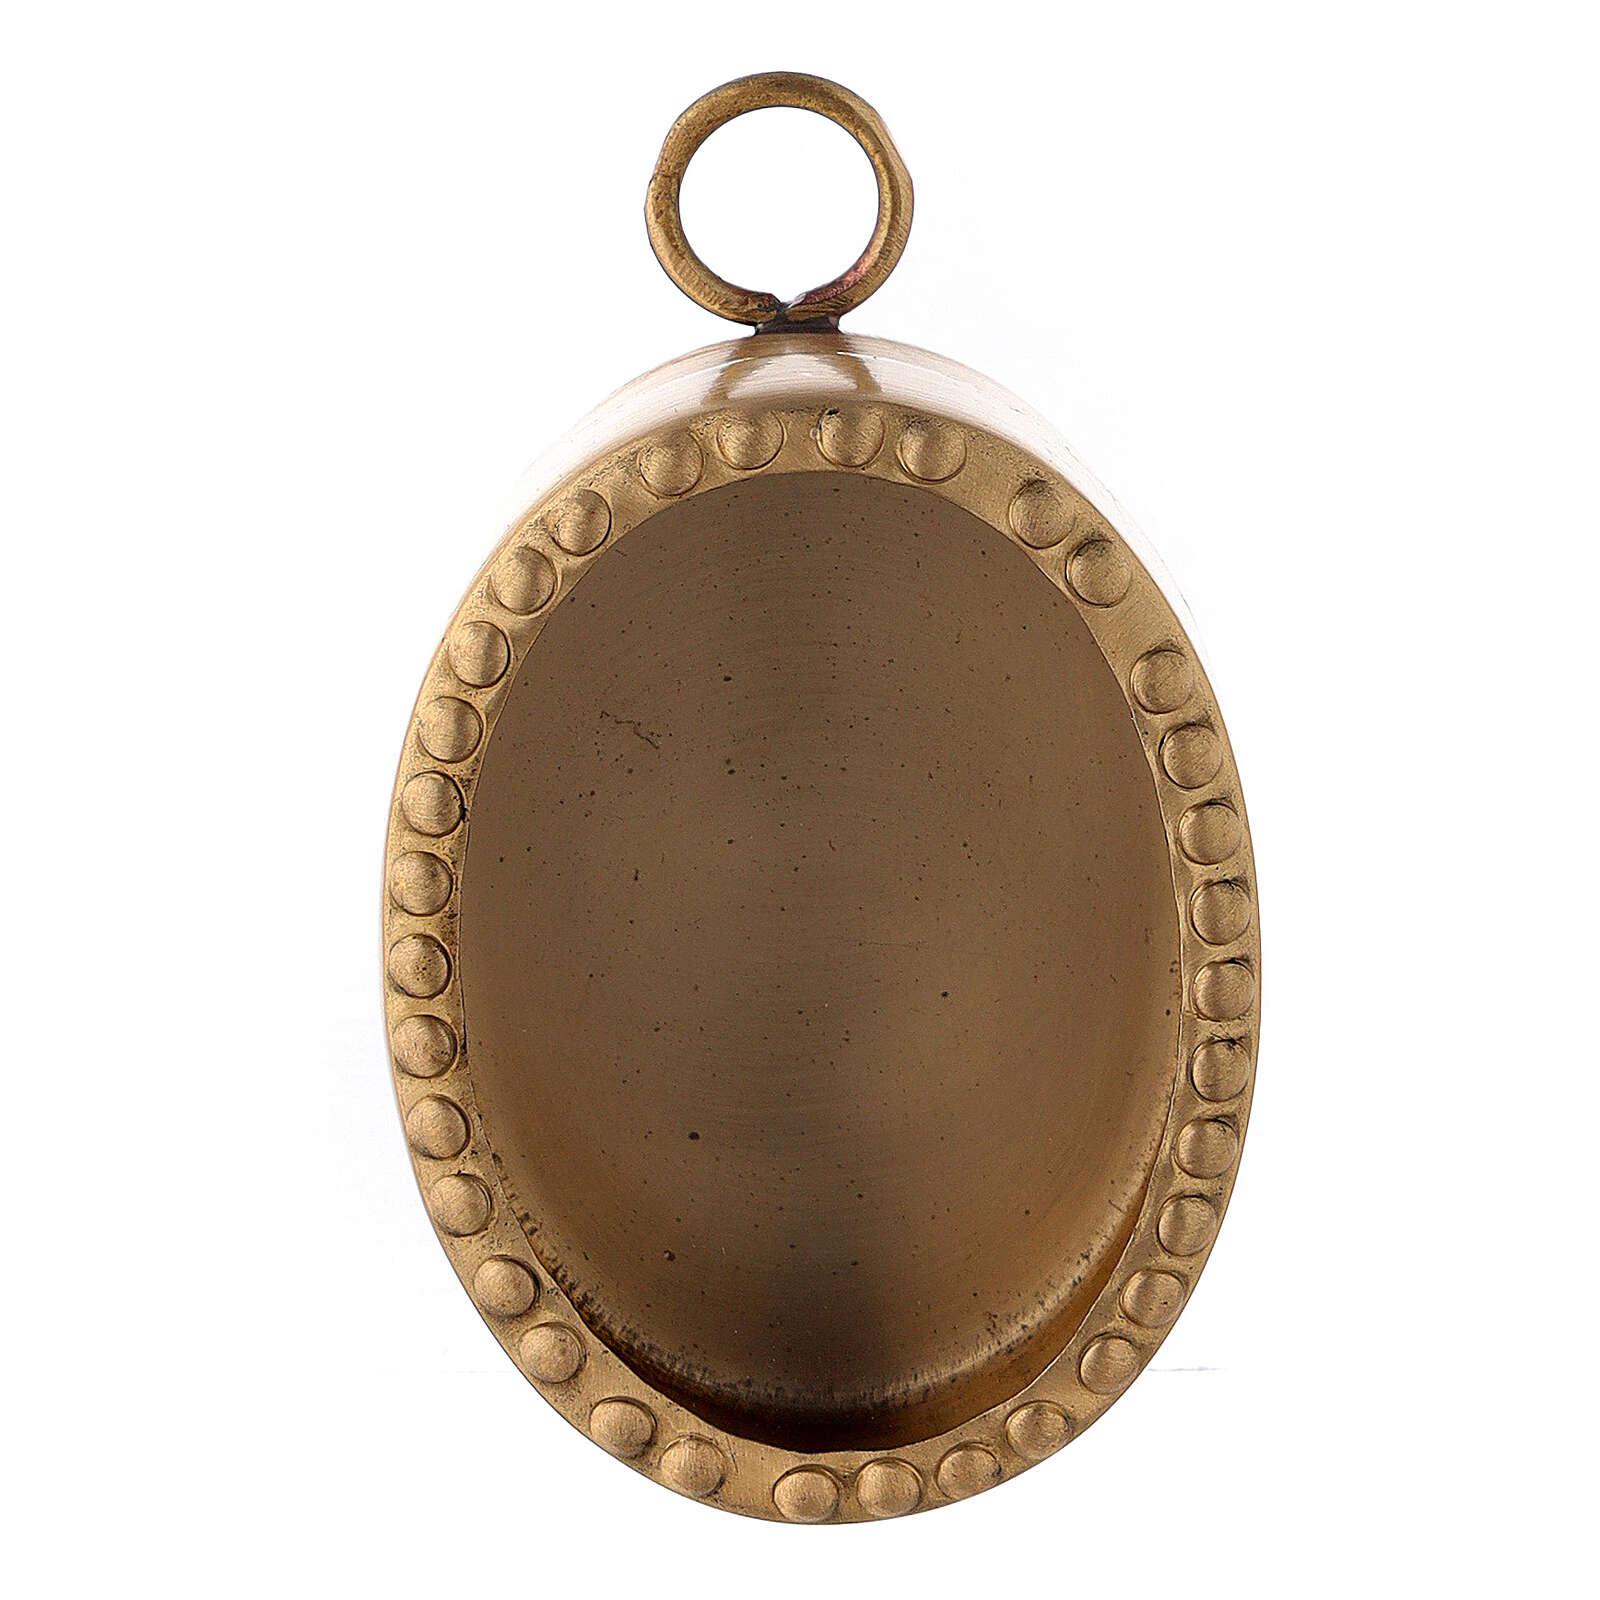 Oval wall shrine in golden brass with beads, 6 cm 4